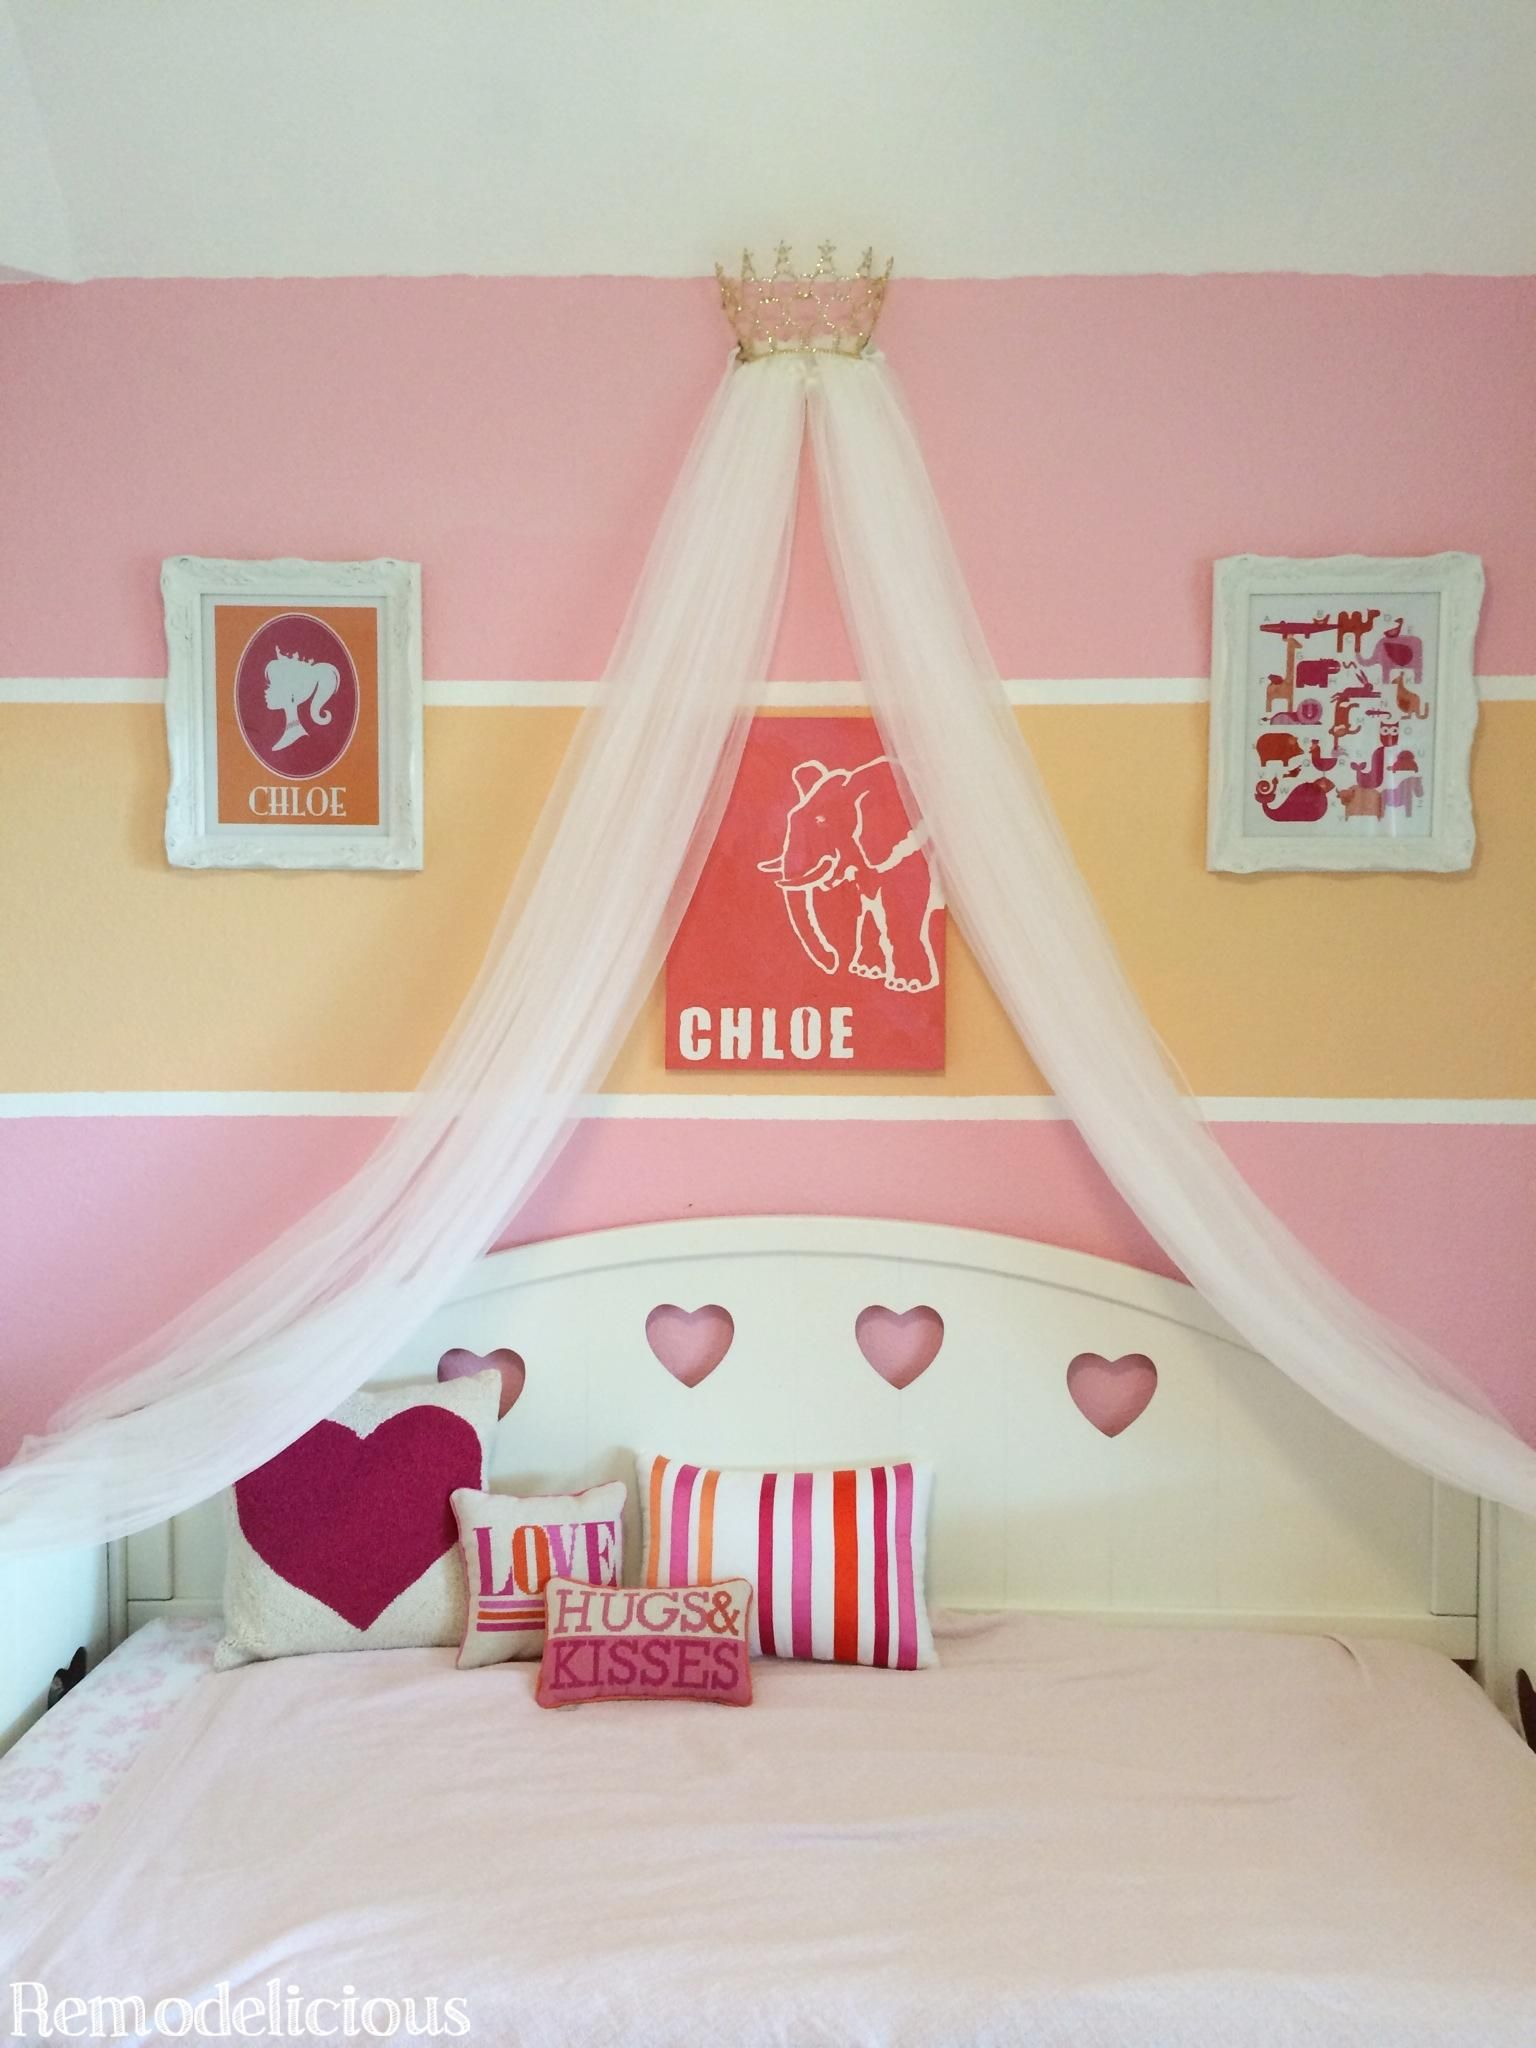 Diy Princess Crown Bed Canopy From Upcycled Pageant Crown Remodelicious Princess Bed Minimalist Kids Room